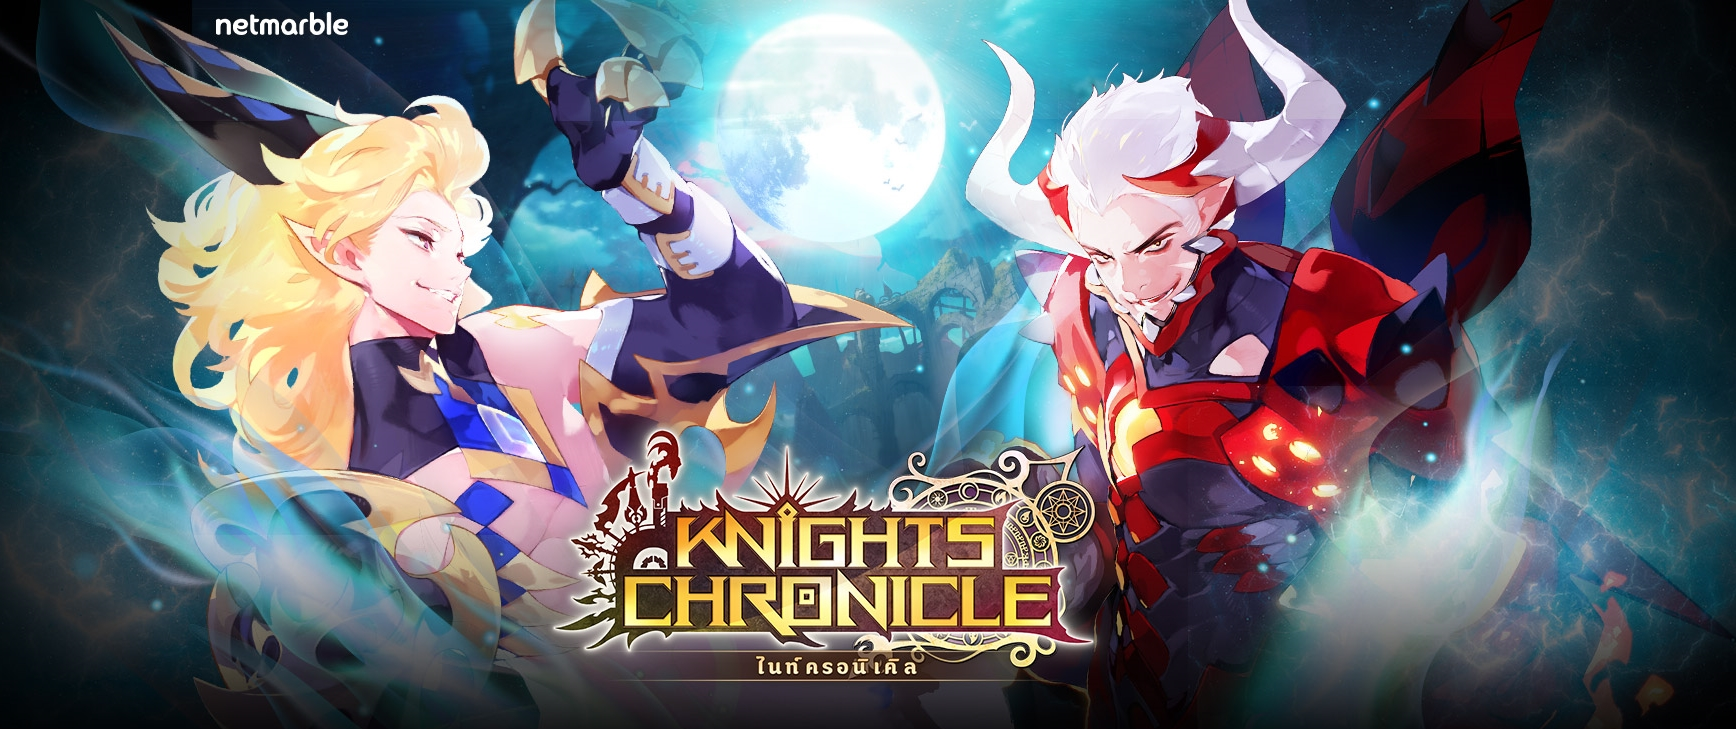 Knights Chronicle 1252019 21